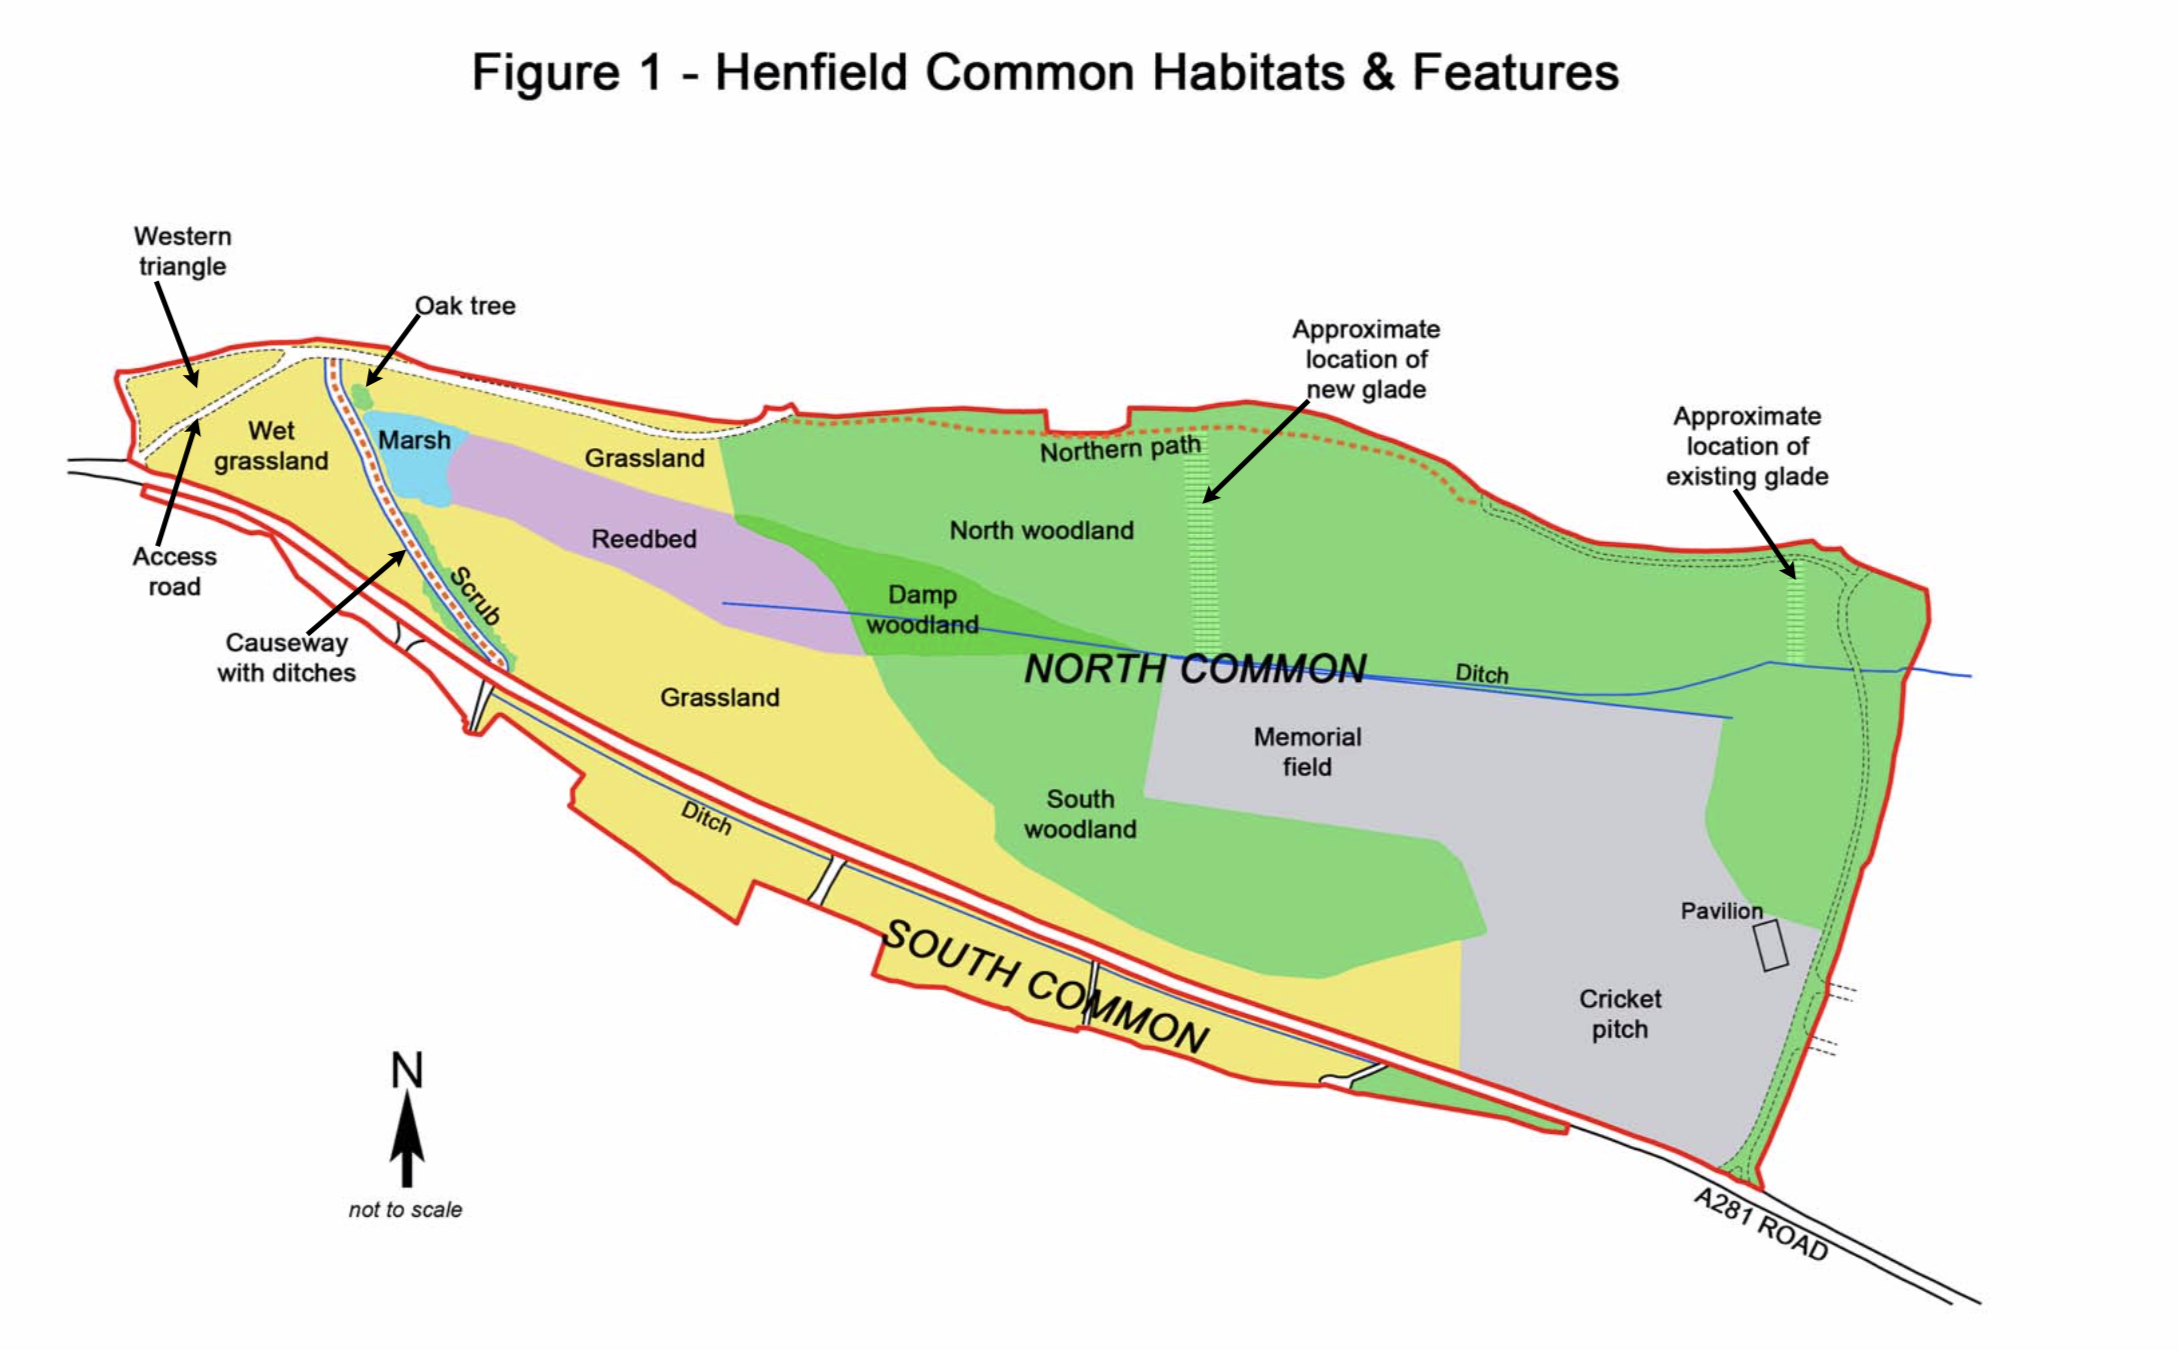 Henfield Common Habitats and Features